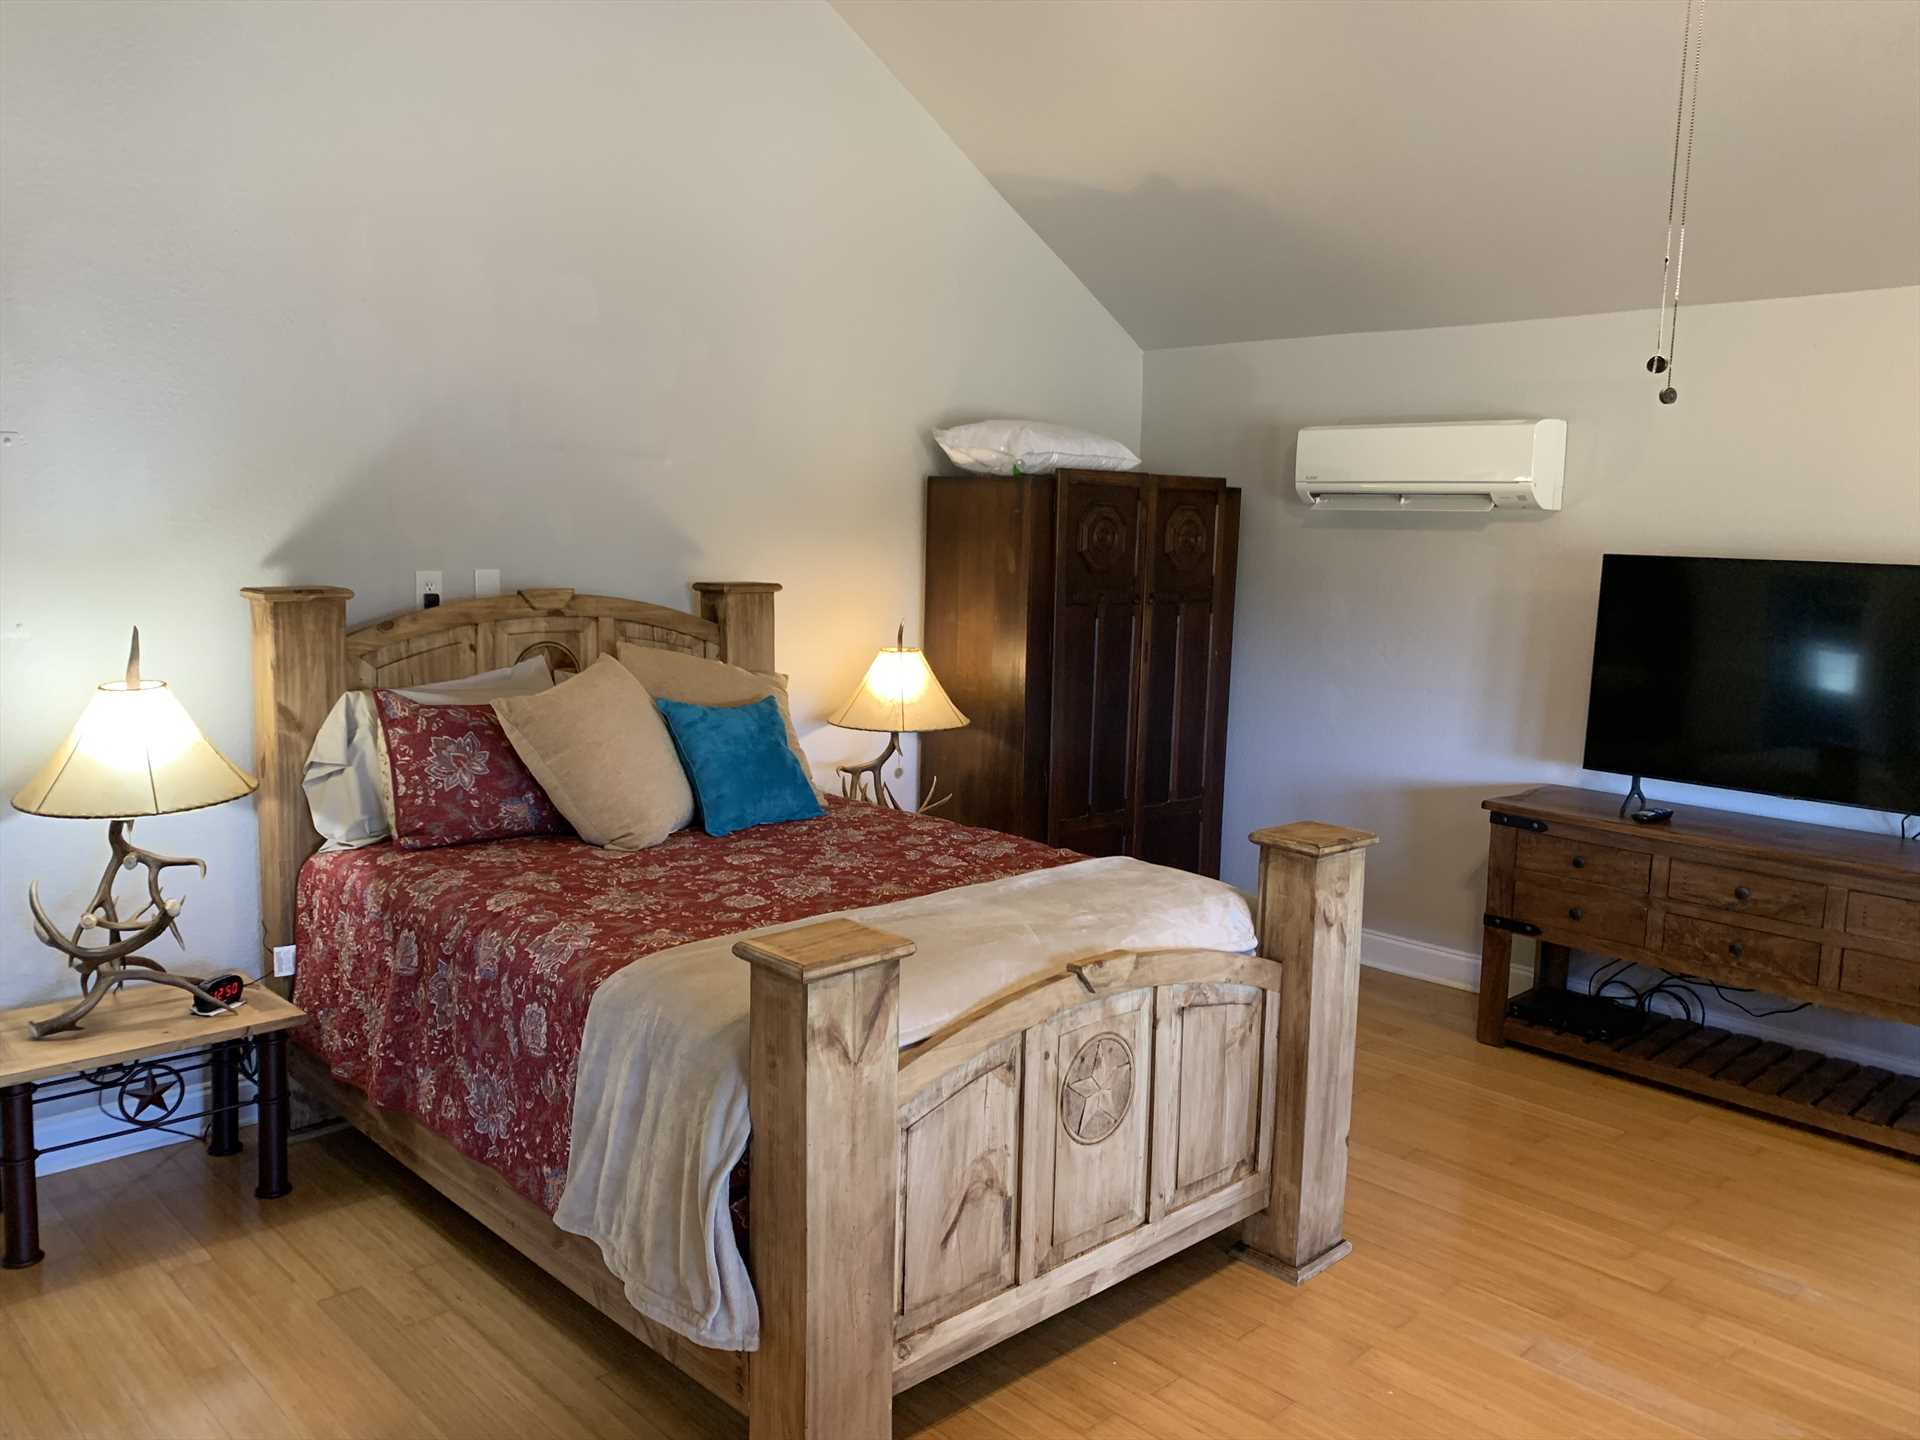 The handsome woodwork at the head and foot of the big queen bed highlight where you'll enjoy restful sleep. Bed and bath linens are provided, too!